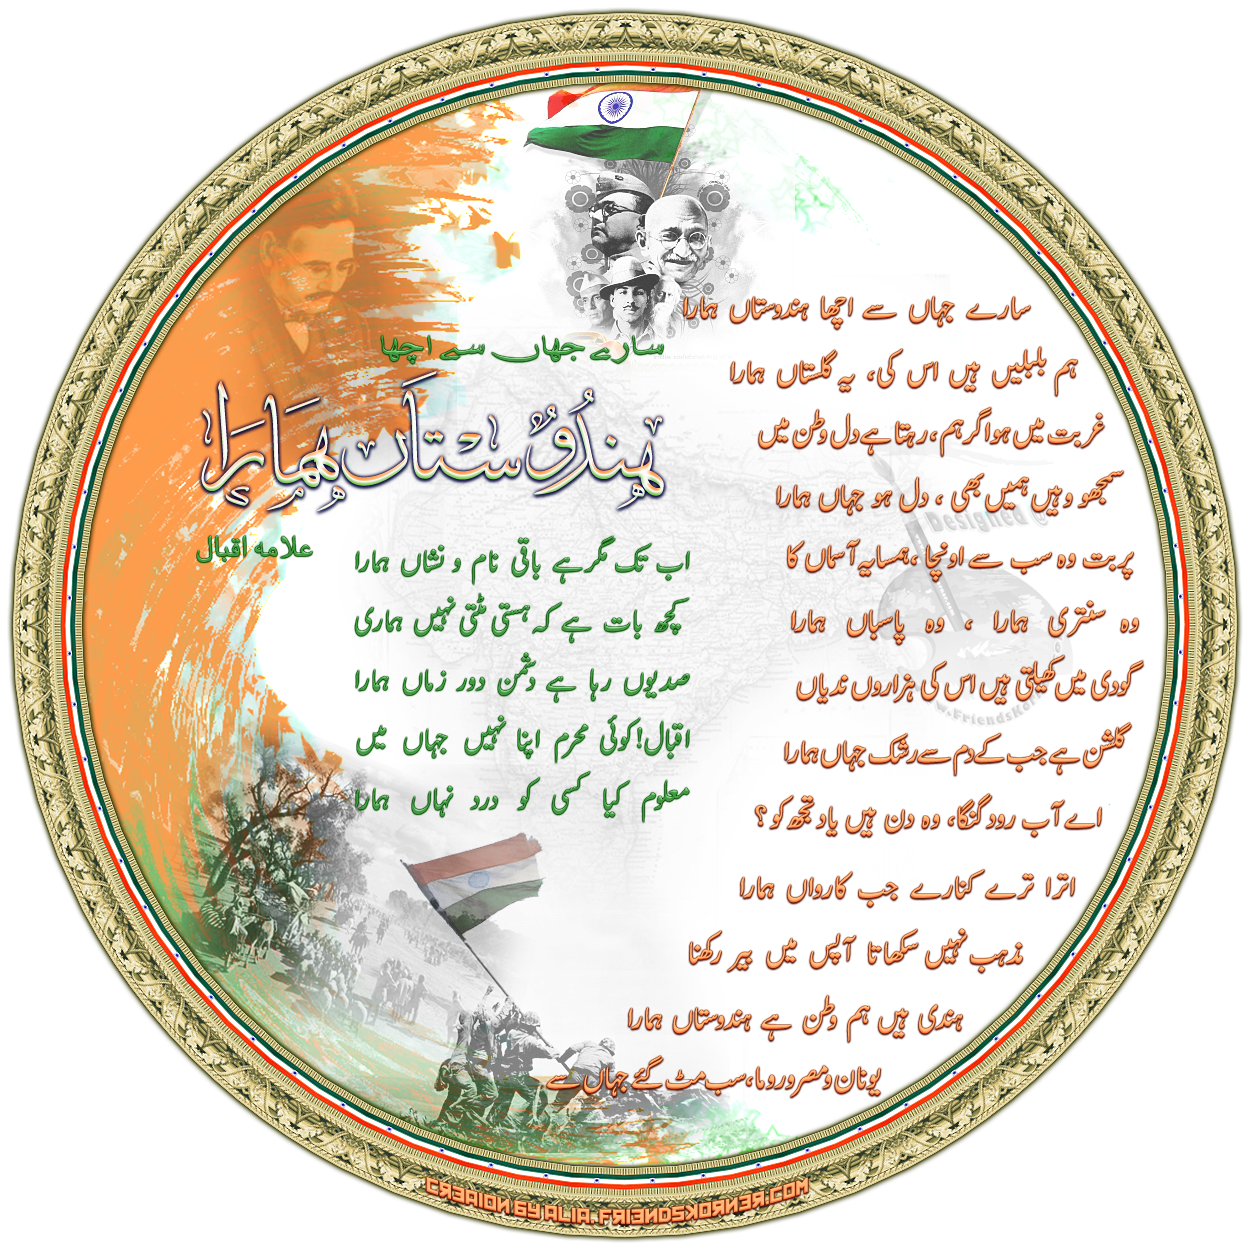 The Best Azaadi Independence Poems Sunbyanyname